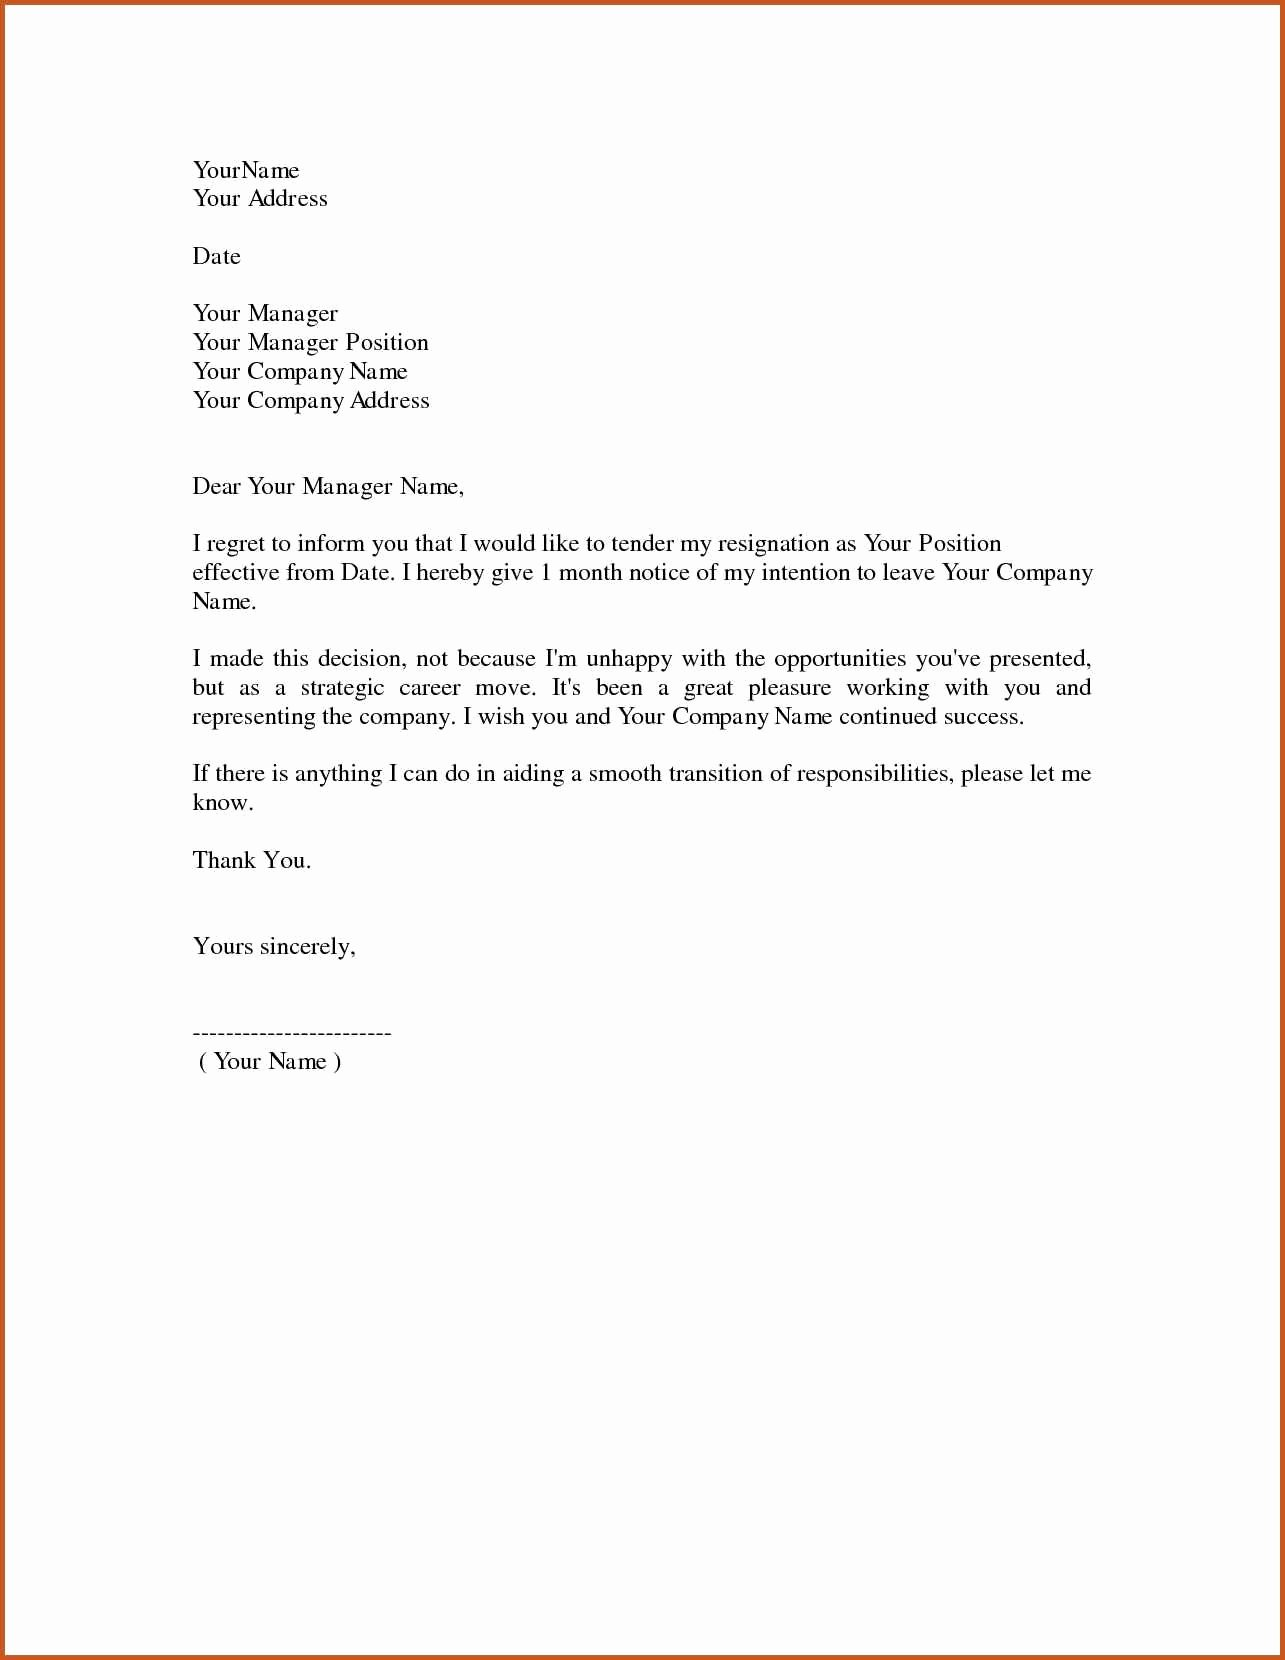 Retirement Resignation Letter Template Awesome Retirement Letter to Employer Template Samples